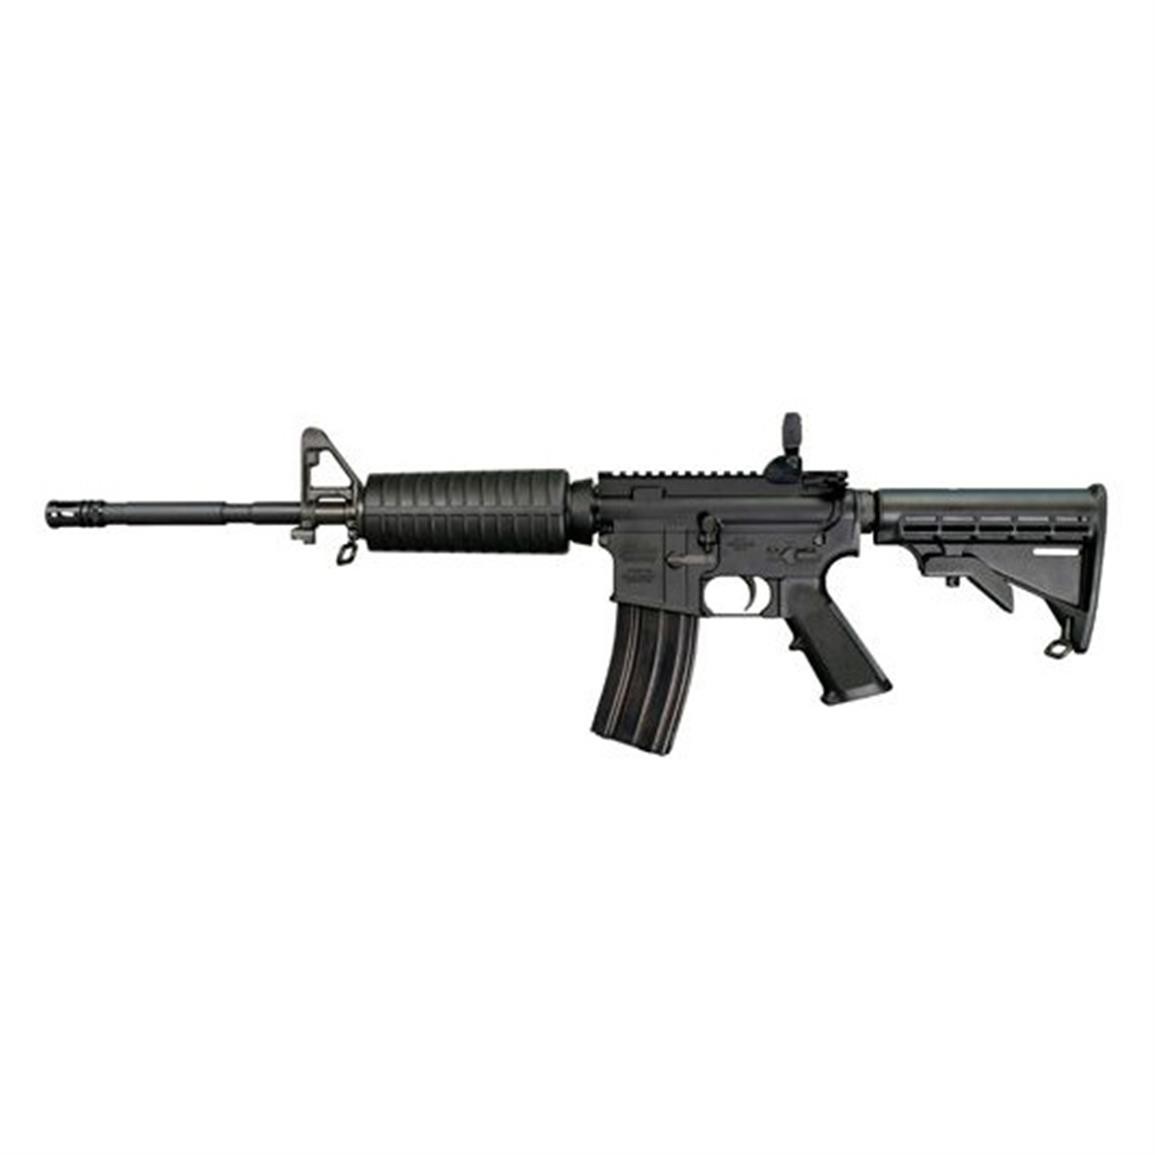 Windham Weaponry MPC-RF AR-15, Semi-automatic, 5.56x45mm, R16M4LHRFT, 848037004383